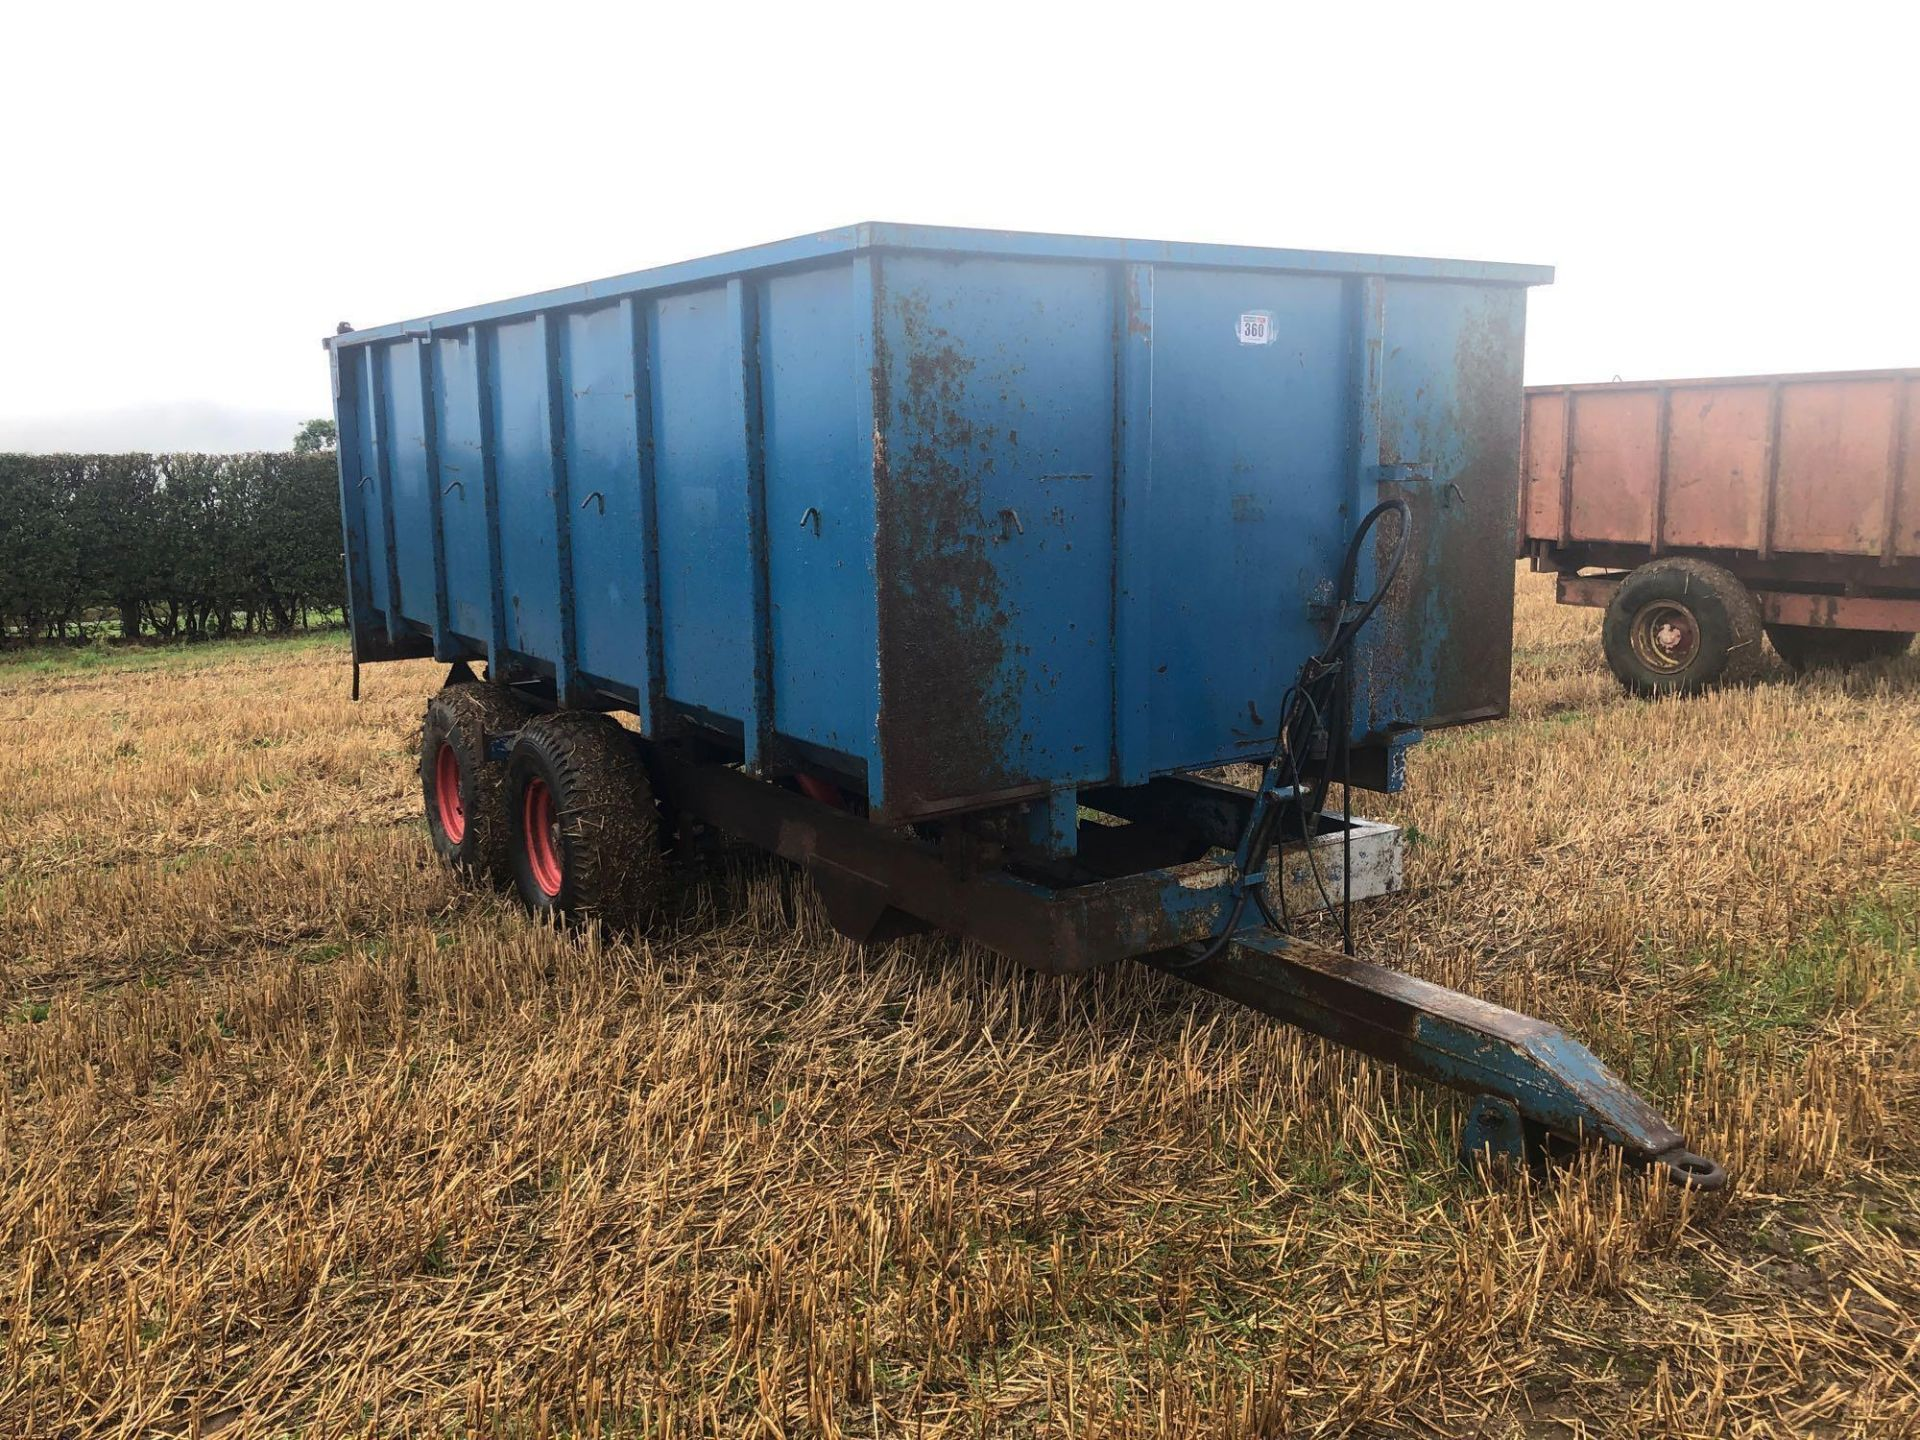 8t twin axle trailer with manual rear door and grain chute. C/w silage sides. On 12.5/80-15.3 wheels